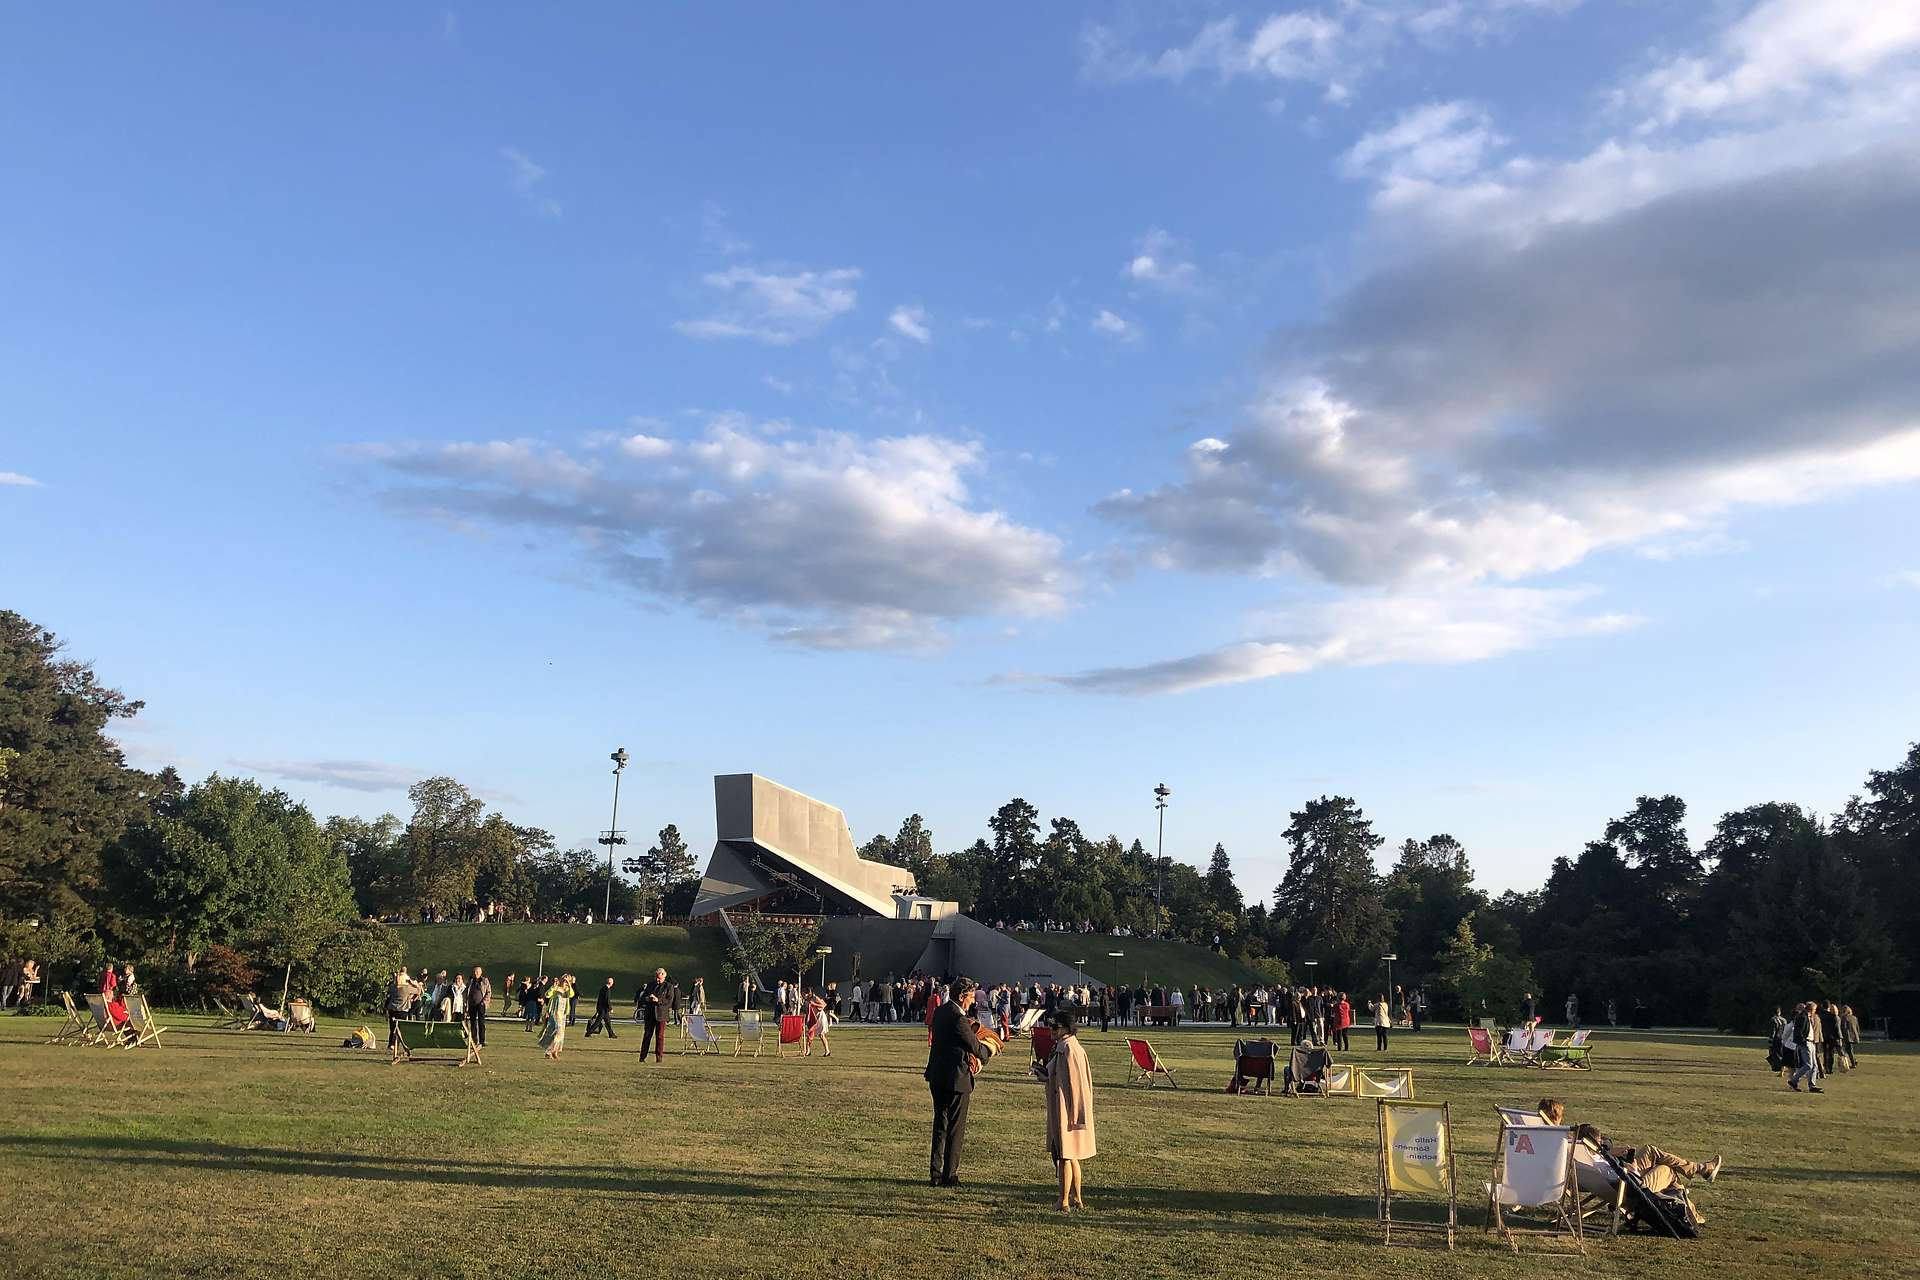 Festival is saved by making use of its park